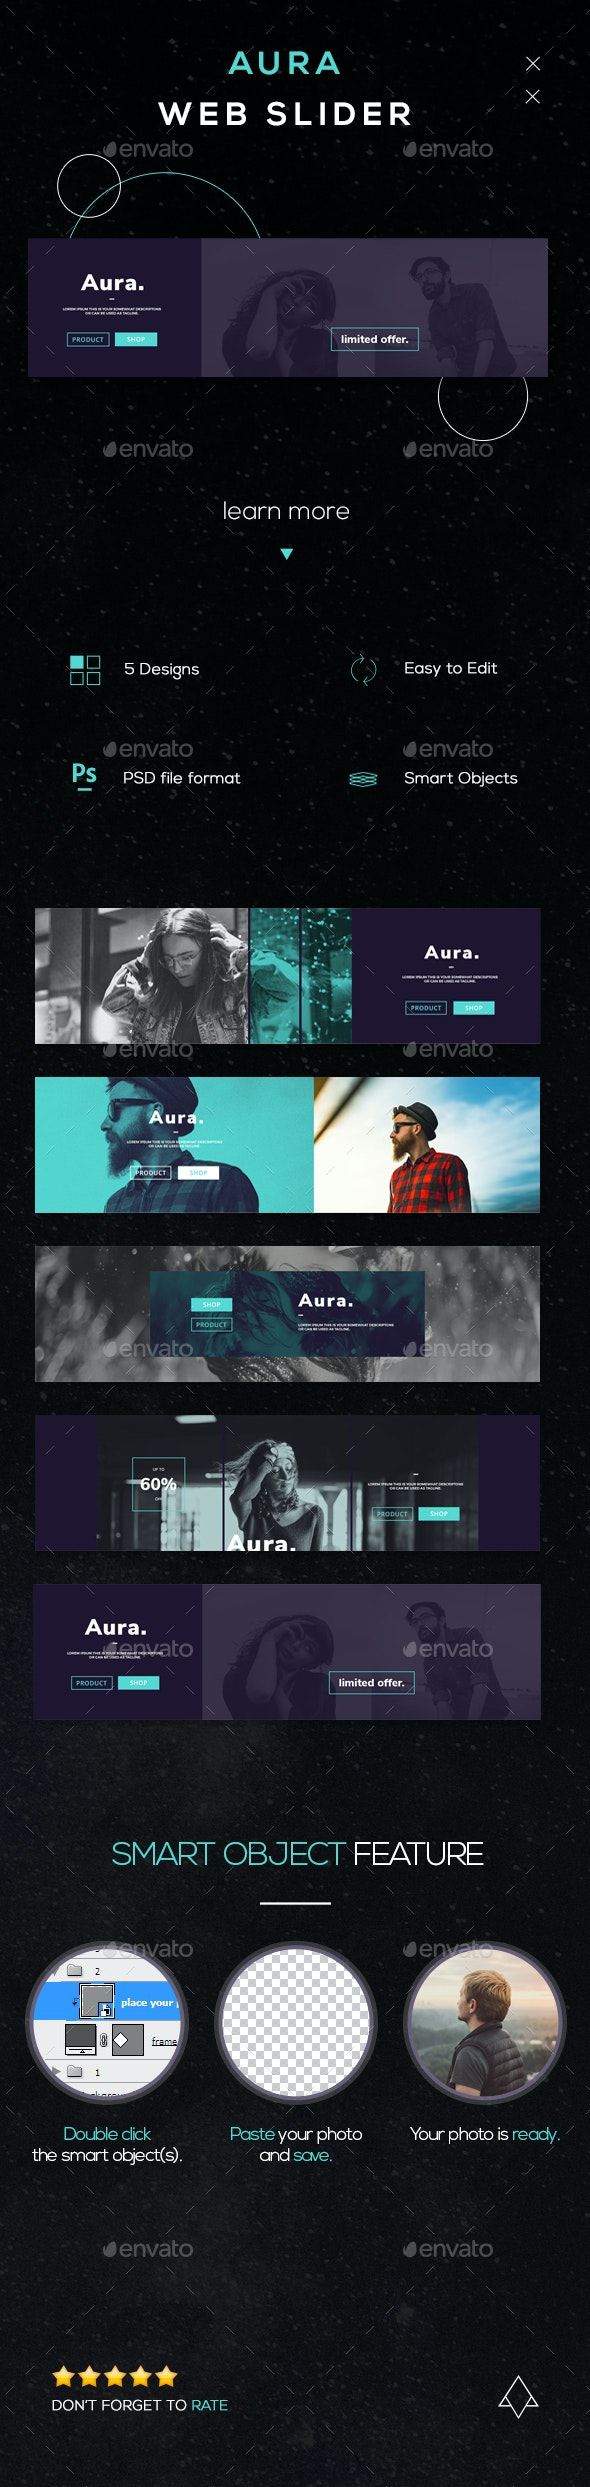 Aura - Modern Web Sliders - Sliders & Features Web Elements